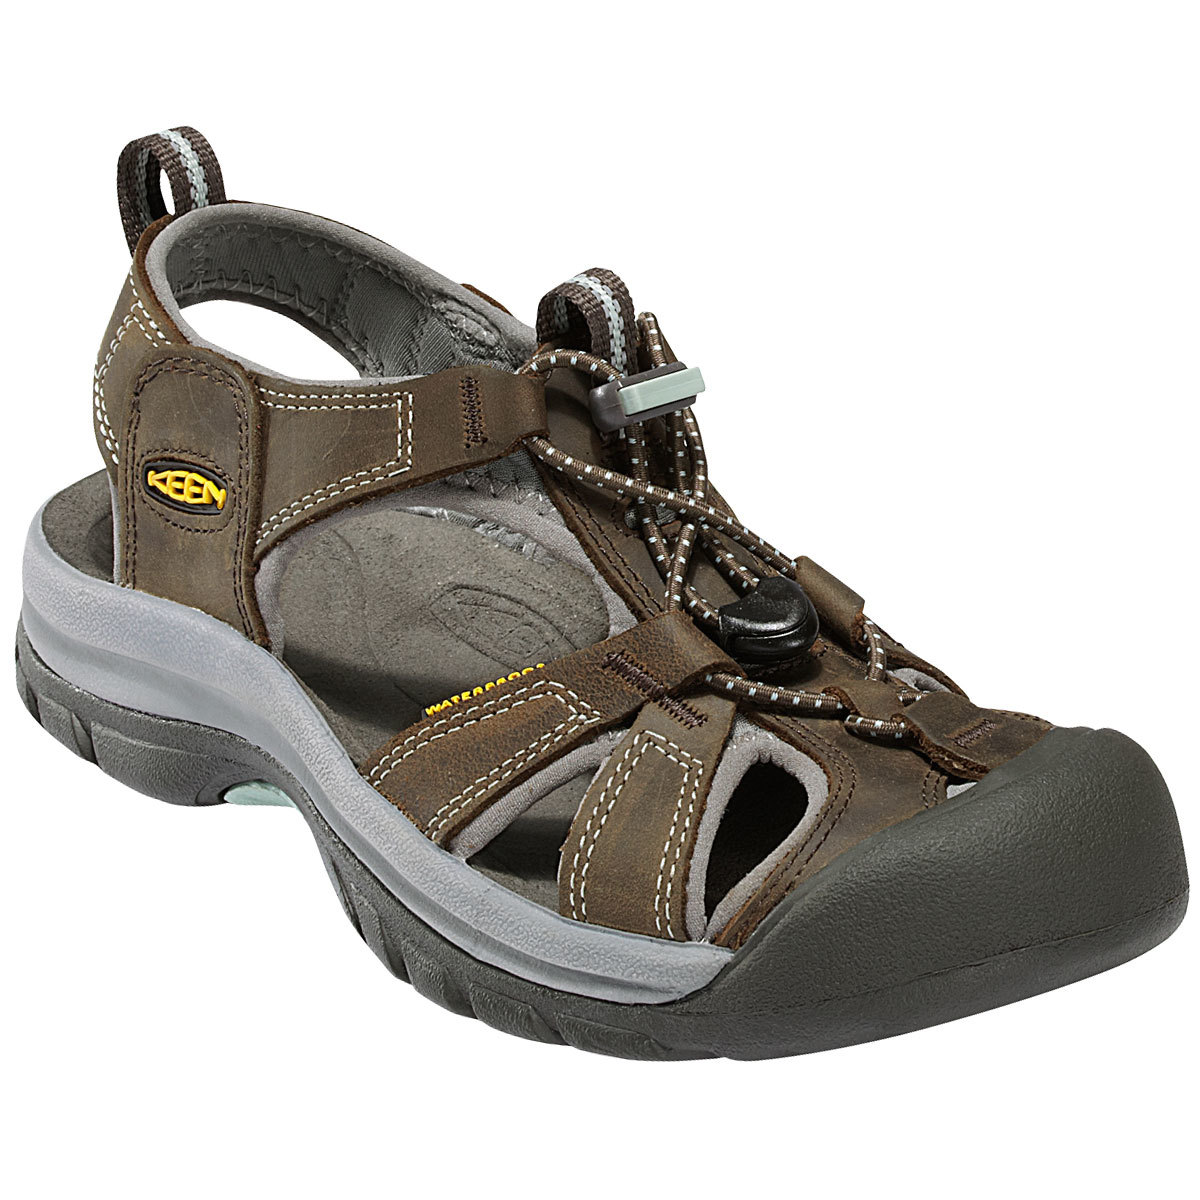 Keen Women's Venice Sandals, Black Olive/surf Spray